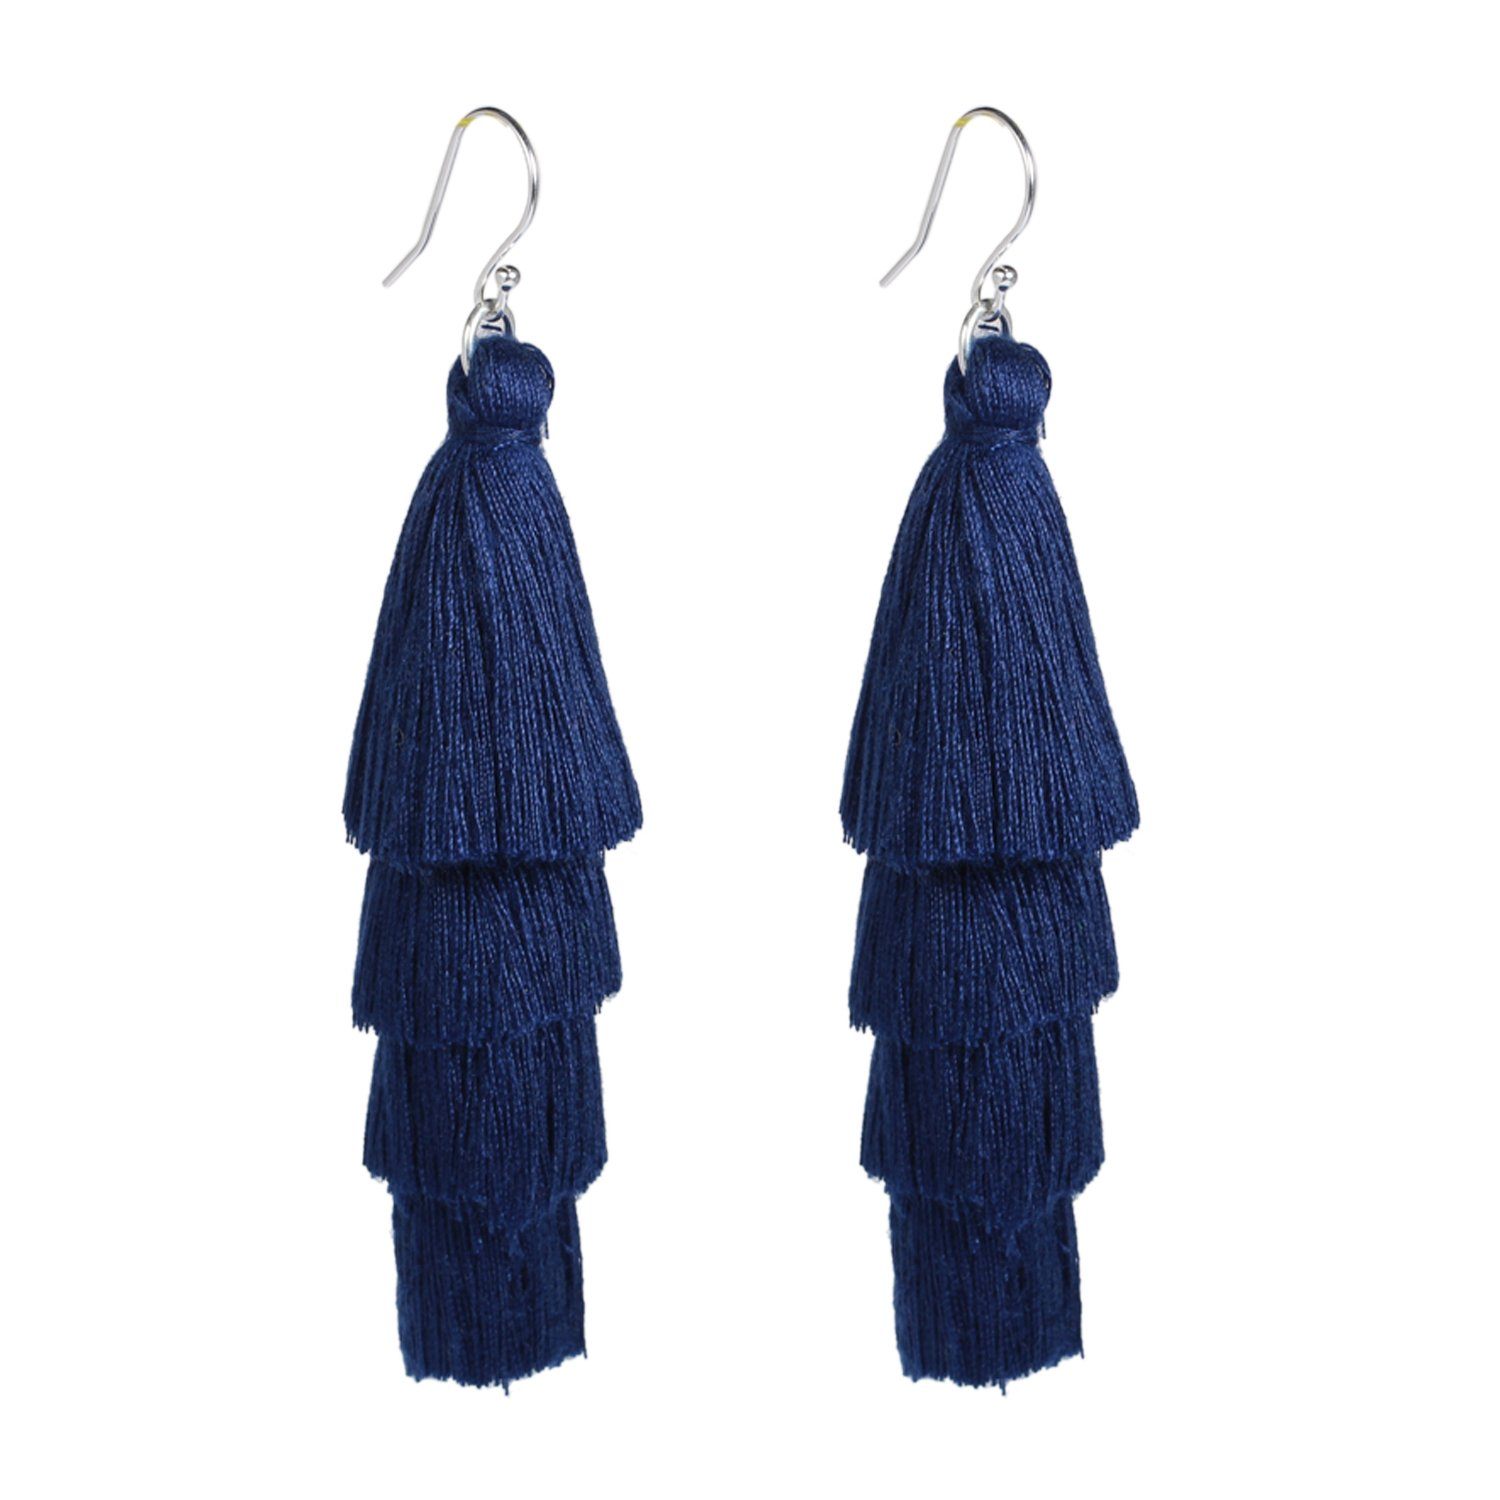 Bonnie 4 Tiered Thread Solid Fringe Layered Tassels Earring for Women Girls (Navy)